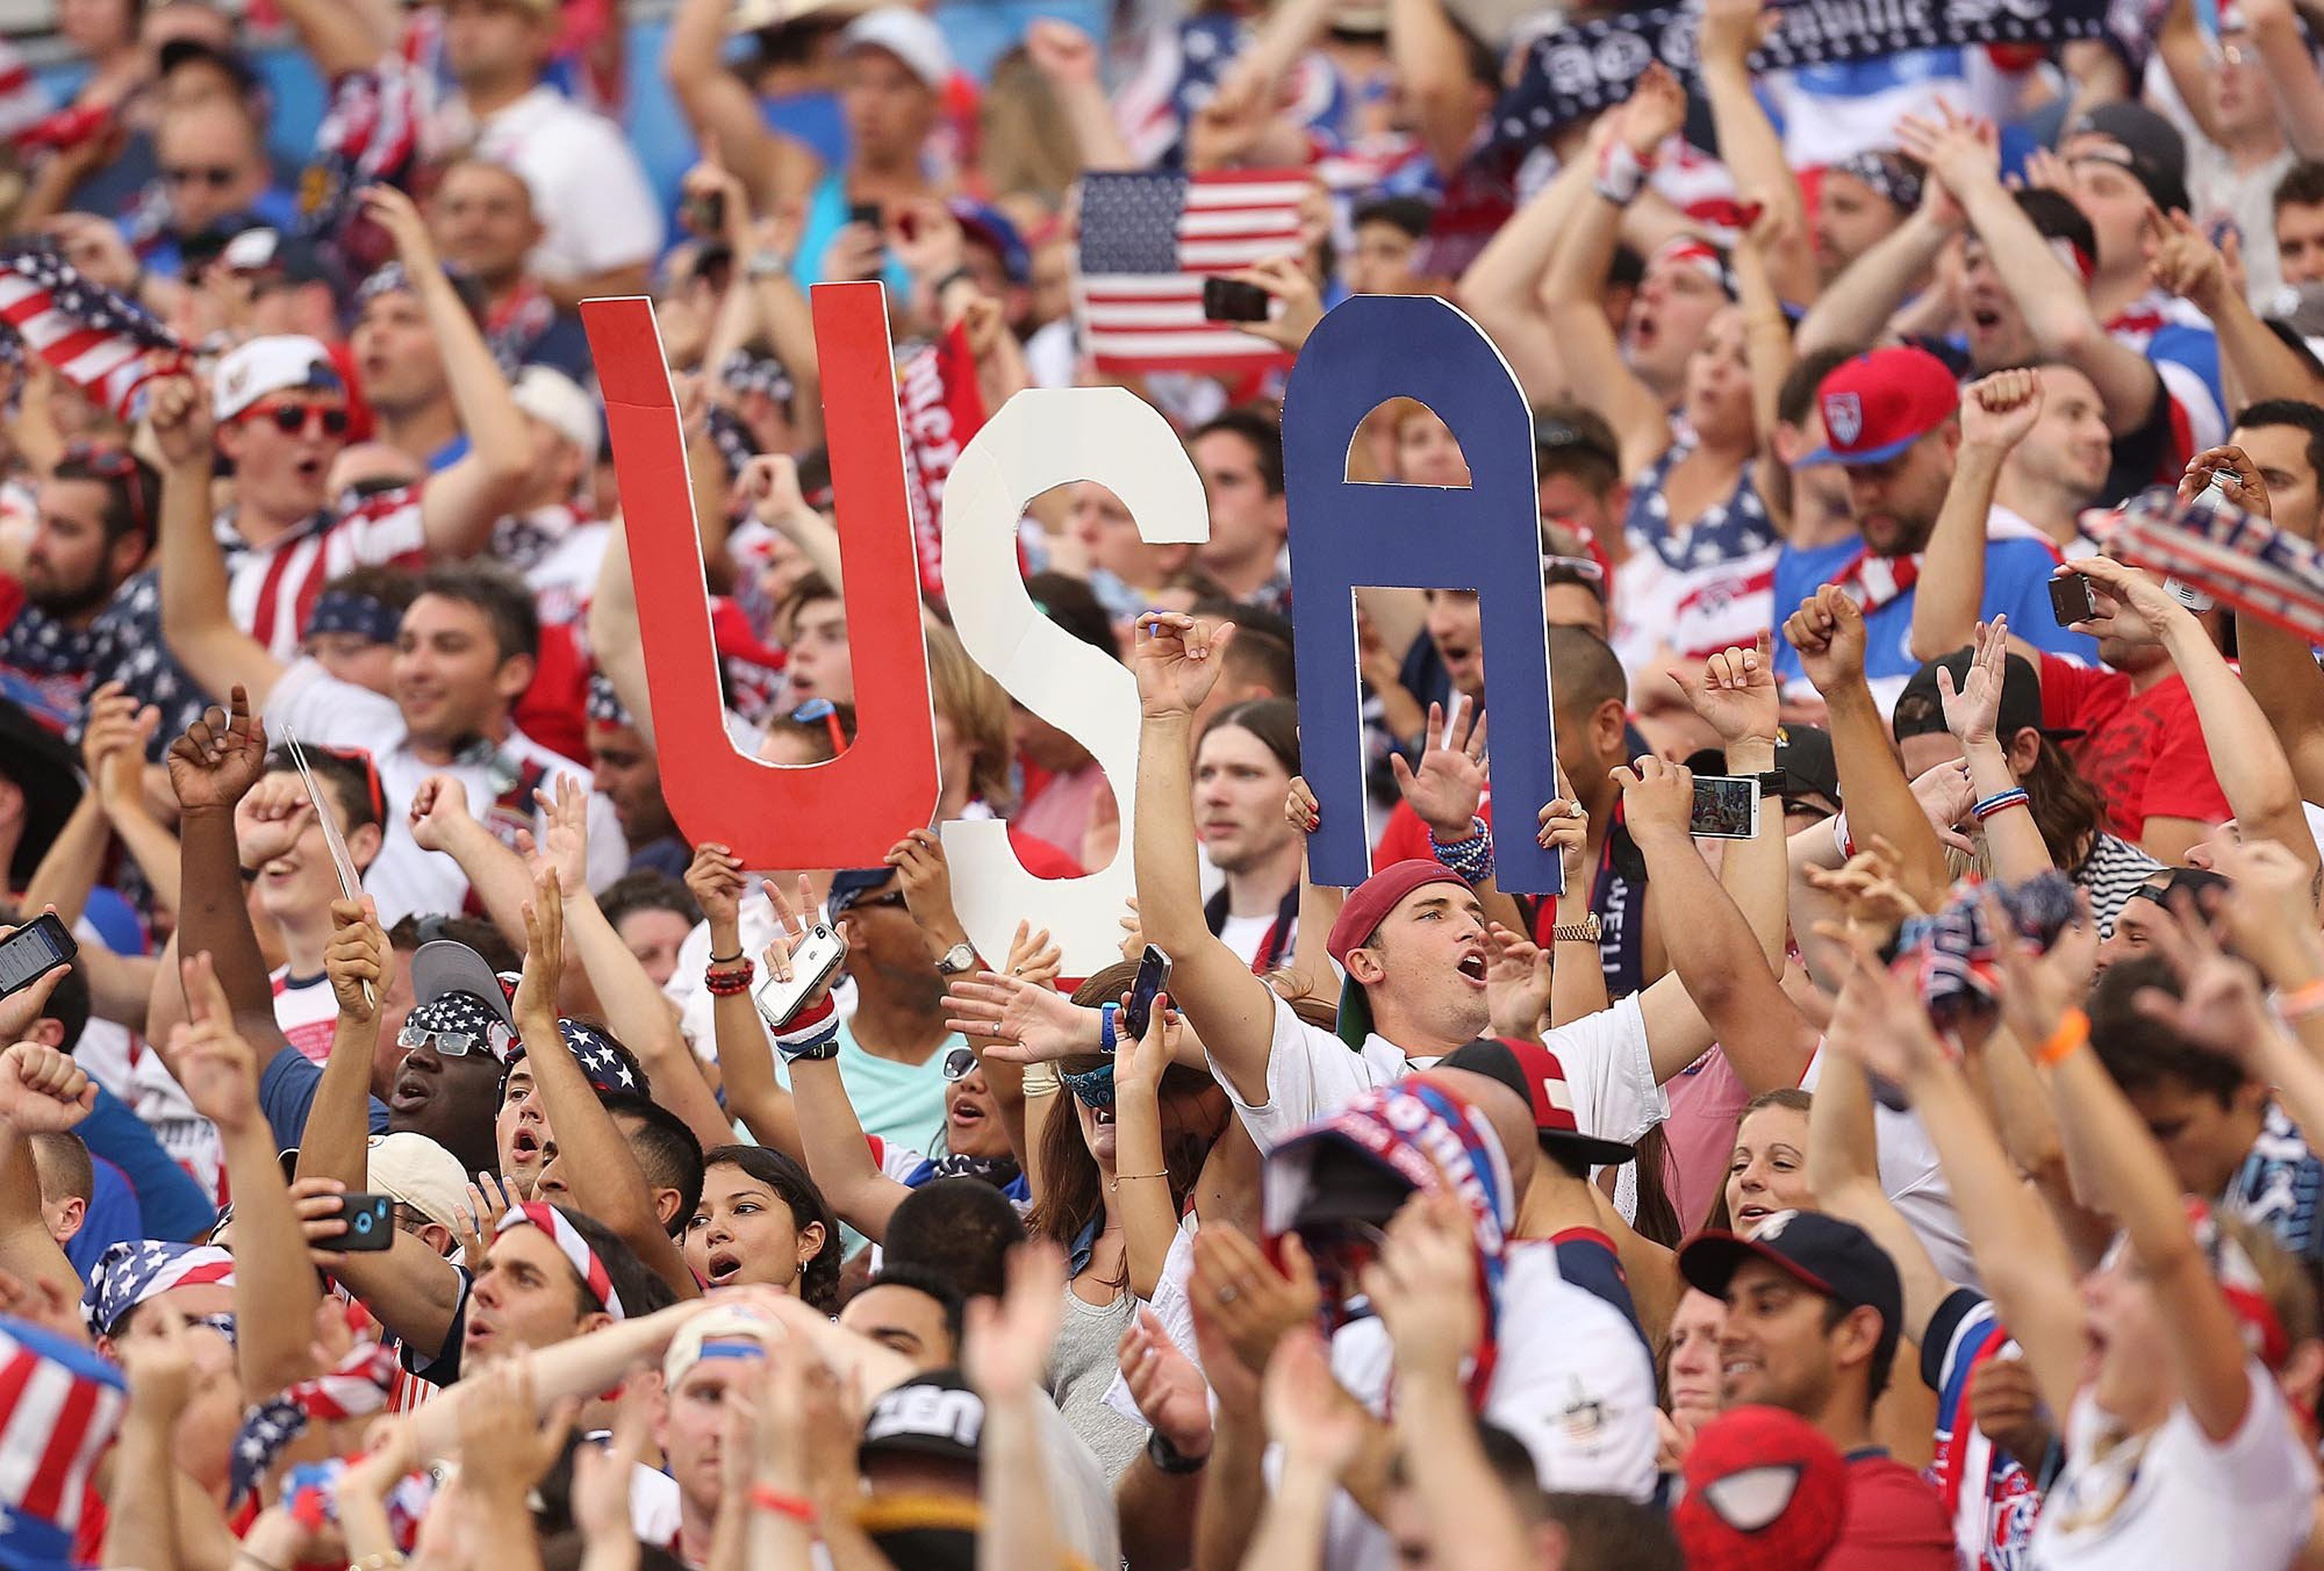 Fans celebrate during the United States' 2-1 win against Nigeria in a friendly in preparation for the World Cup, at EverBank Field in Jacksonville, Fla., on Saturday, June 7, 2014.